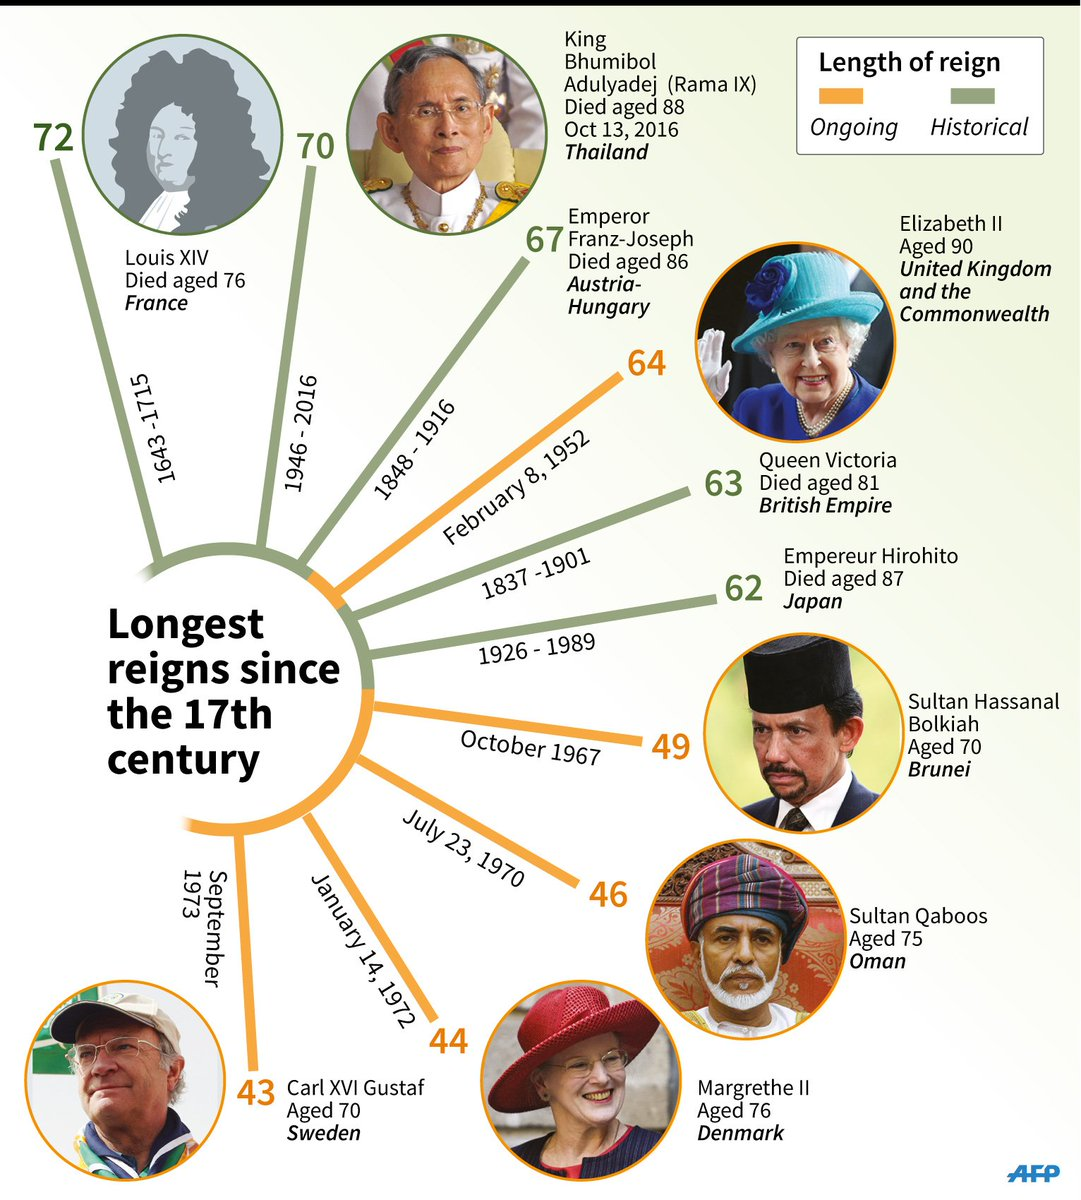 World's longest-reigning monarchs https://t.co/06iIwtBKeh https://t.co/Xeq8sXqa73